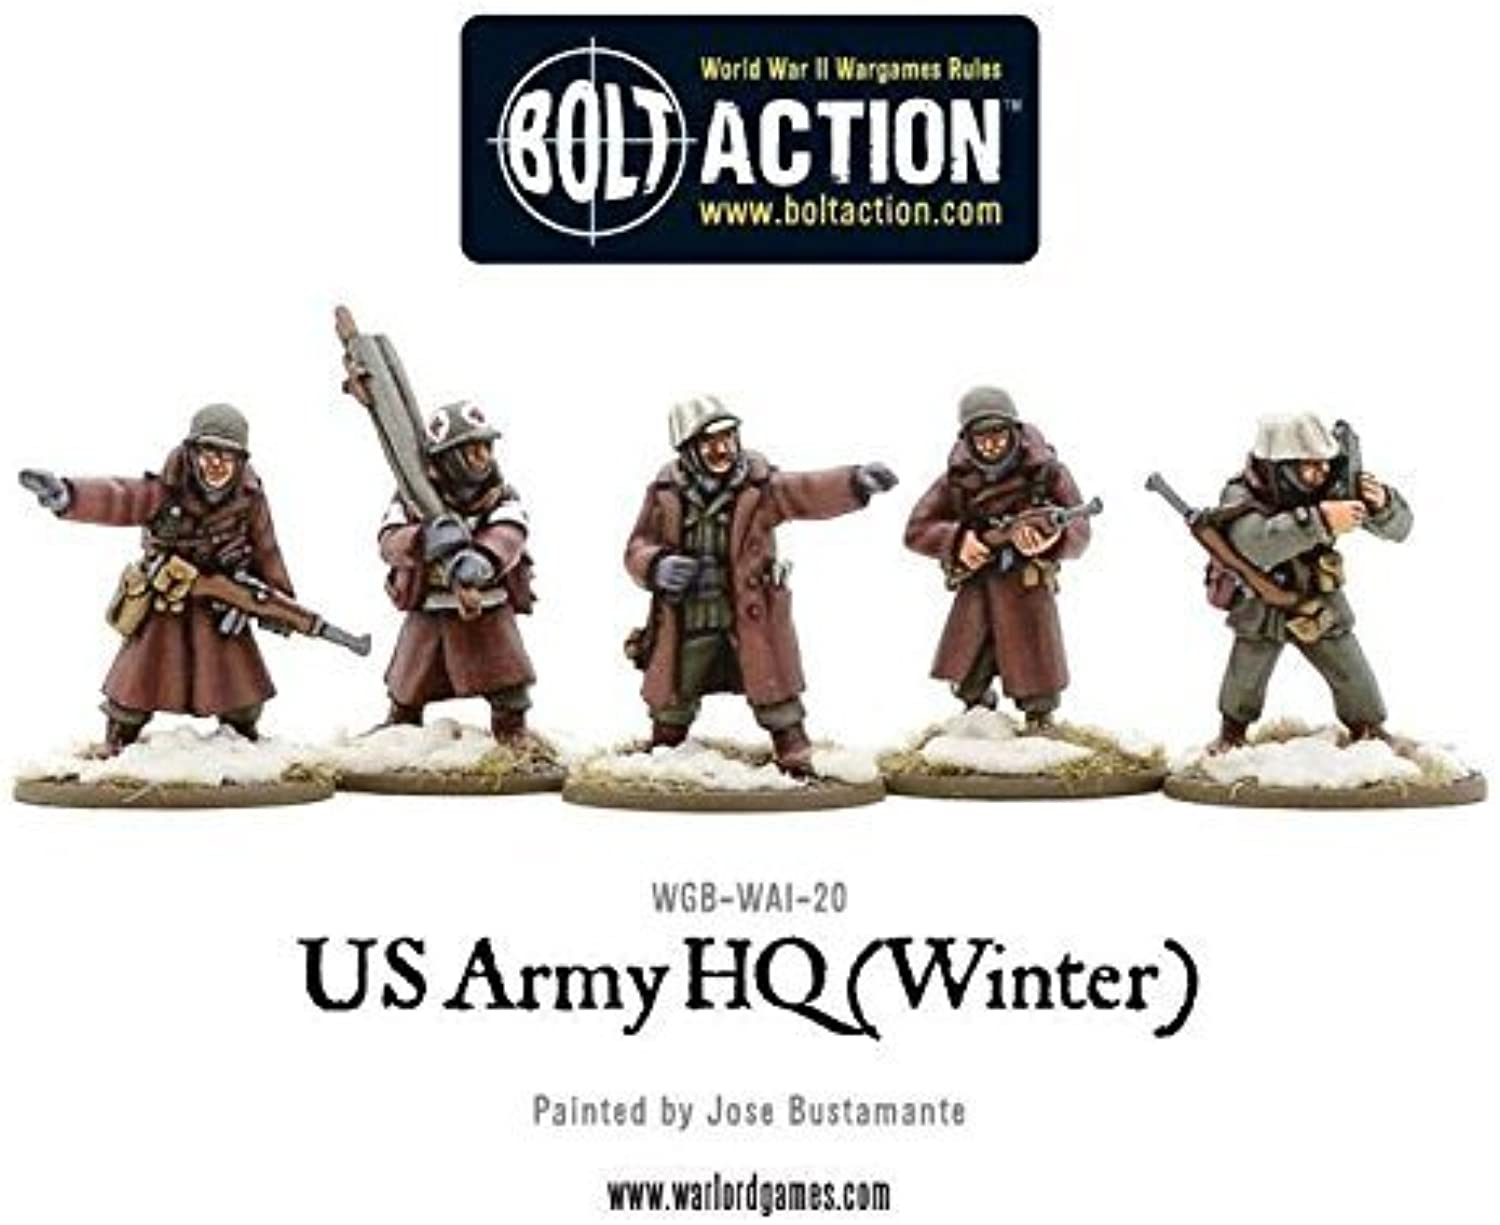 Warlord Games, US Army HQ (Winter), 28mm Bolt Action Wargaming figures by Bolt Action